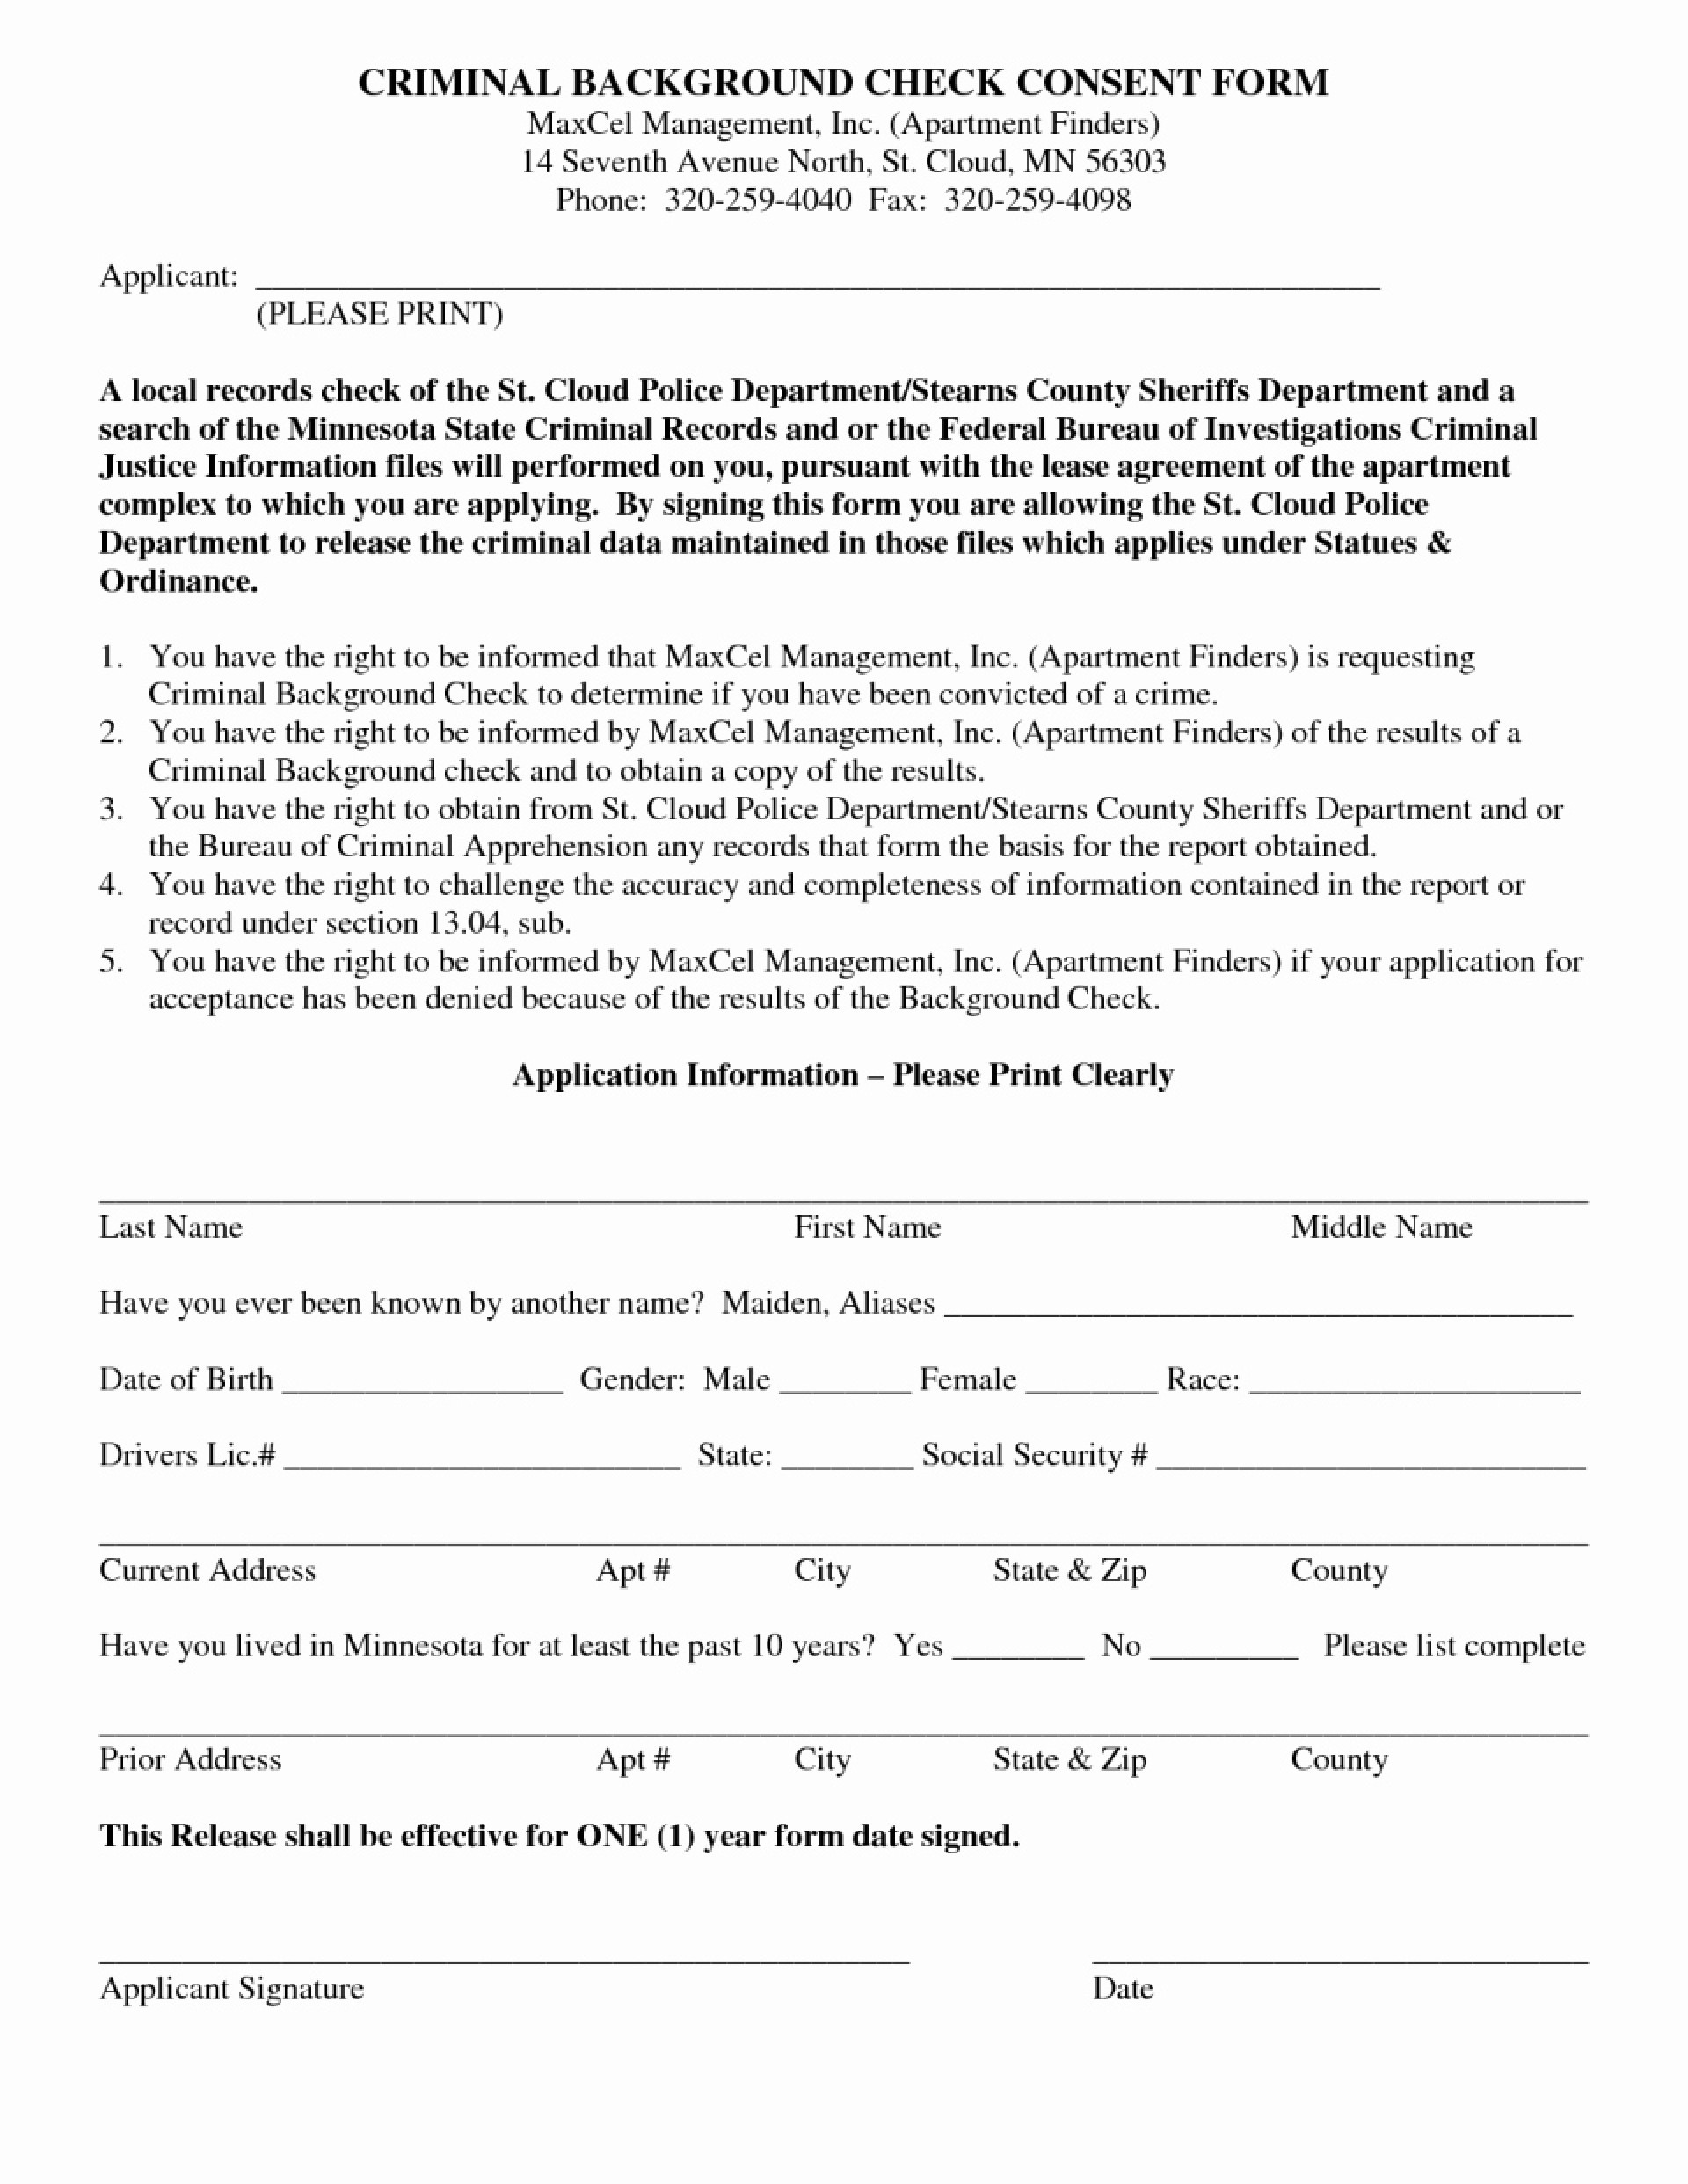 Consent Background Check Authorization Form Template